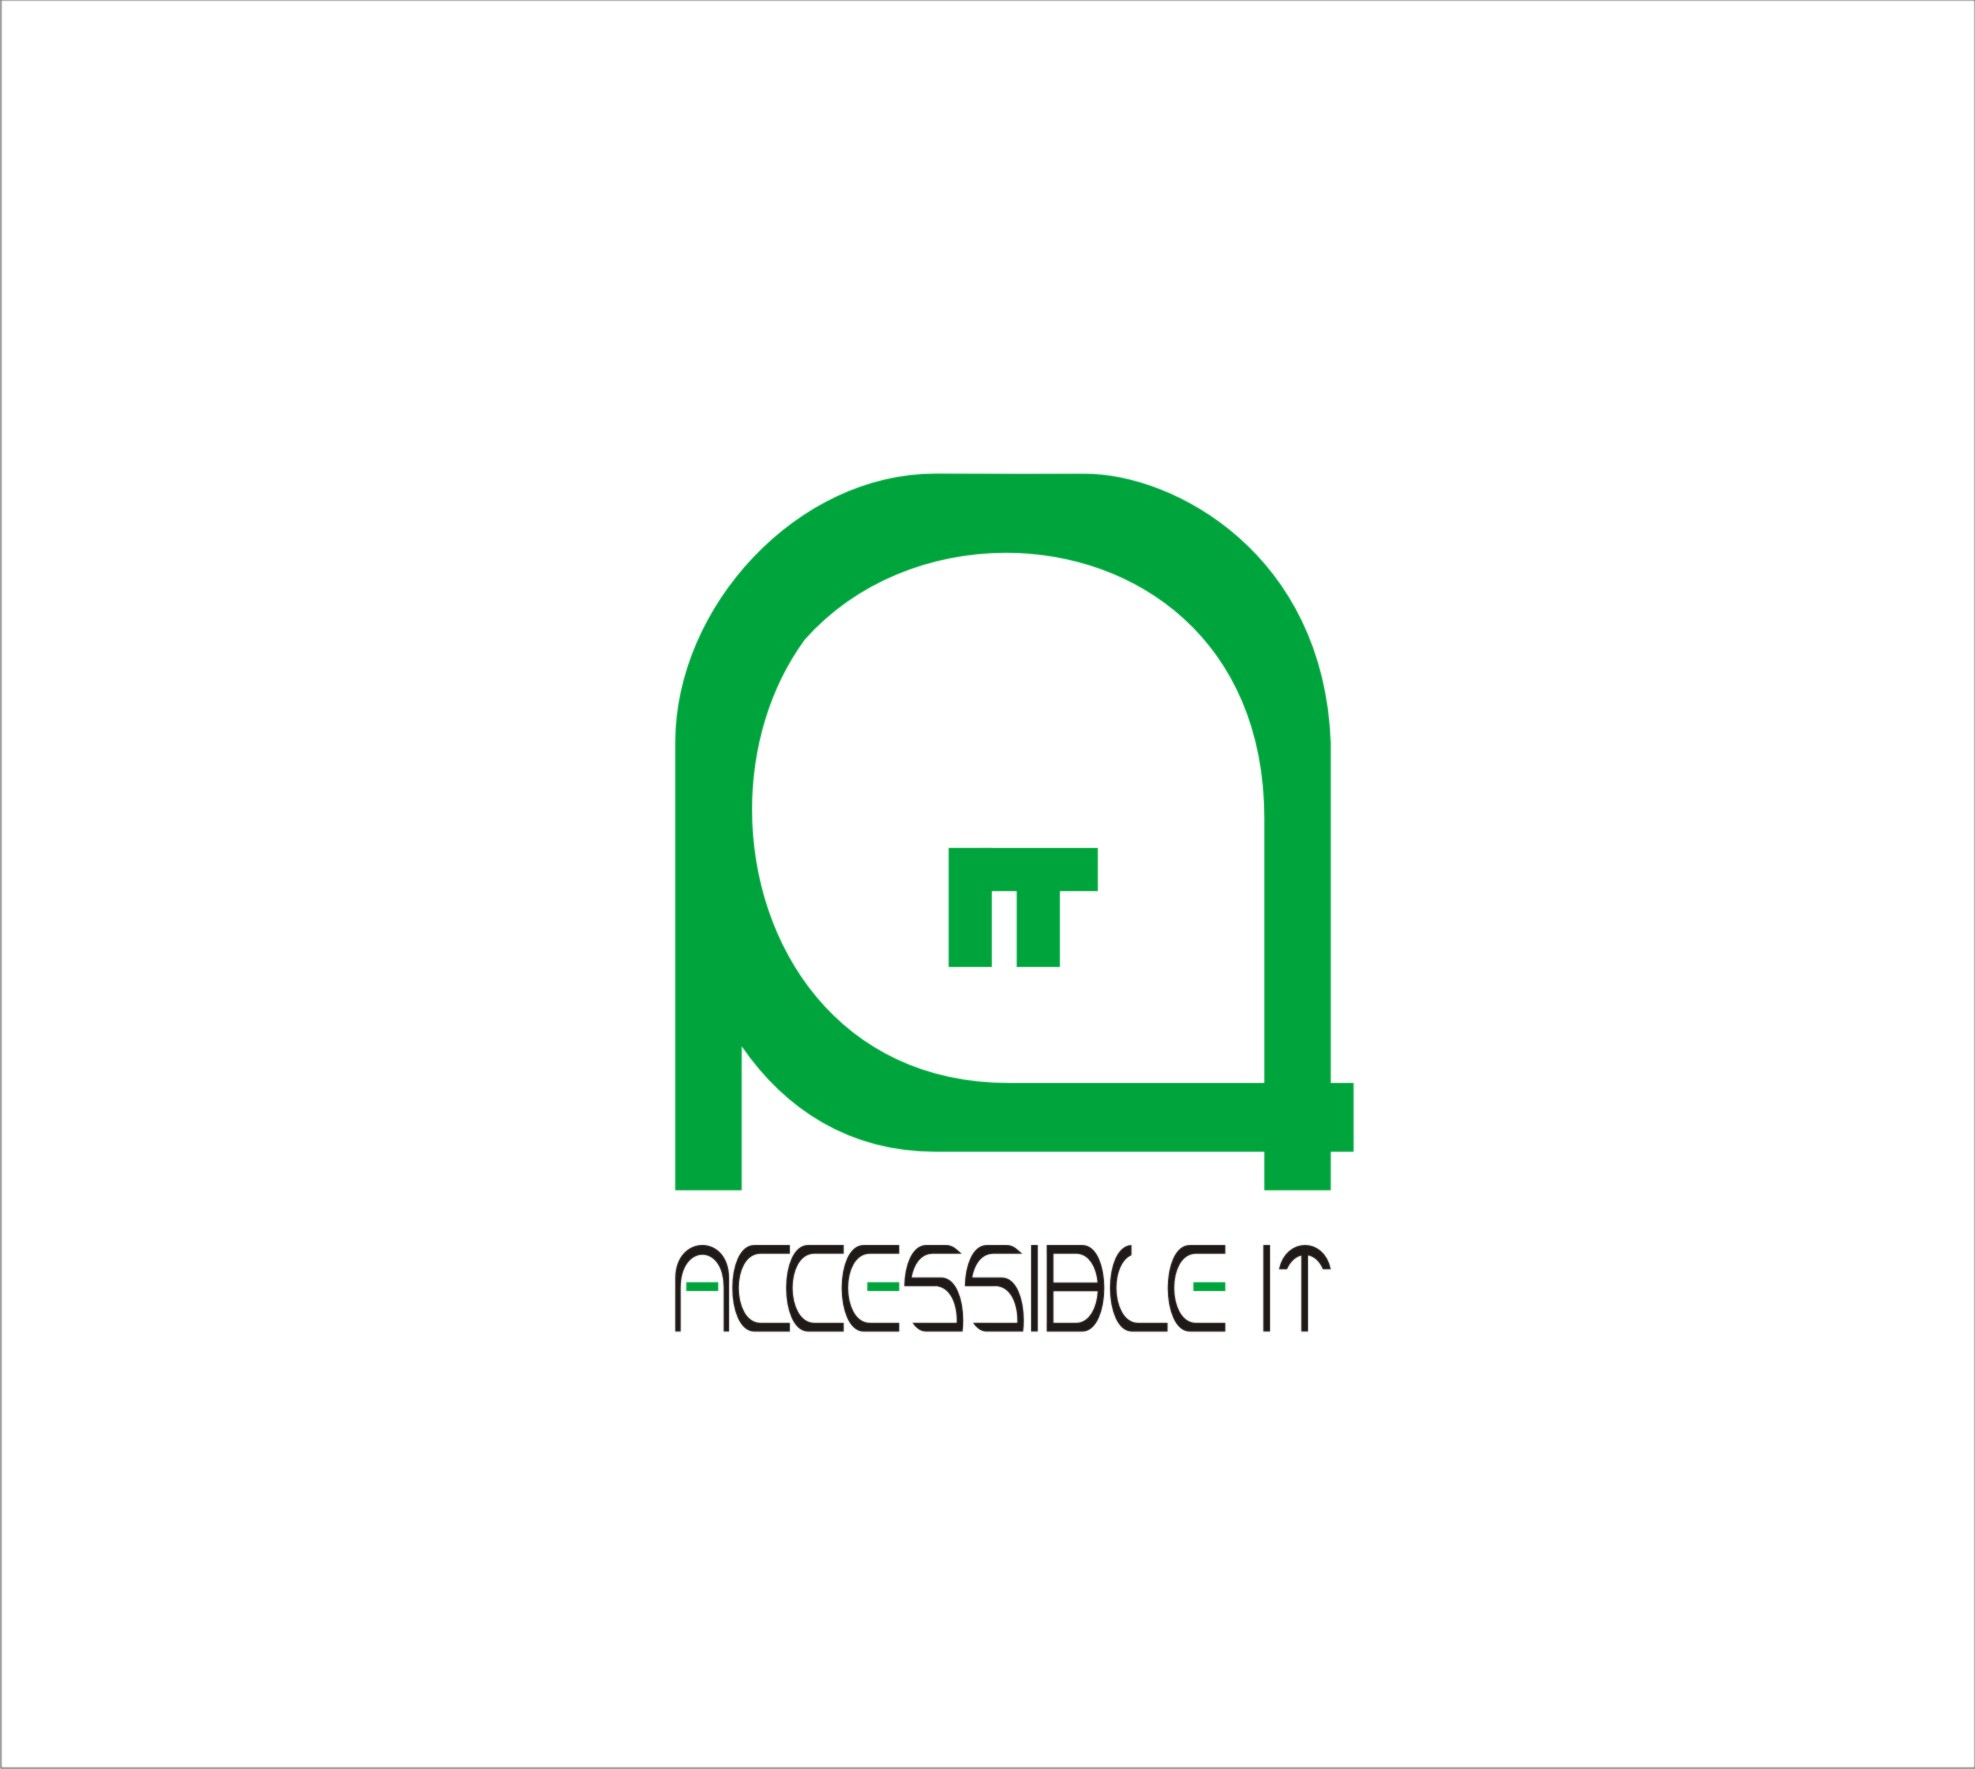 Logo Design by Aedz Danish - Entry No. 415 in the Logo Design Contest Logo Design Needed for Exciting New Company Accessible IT.